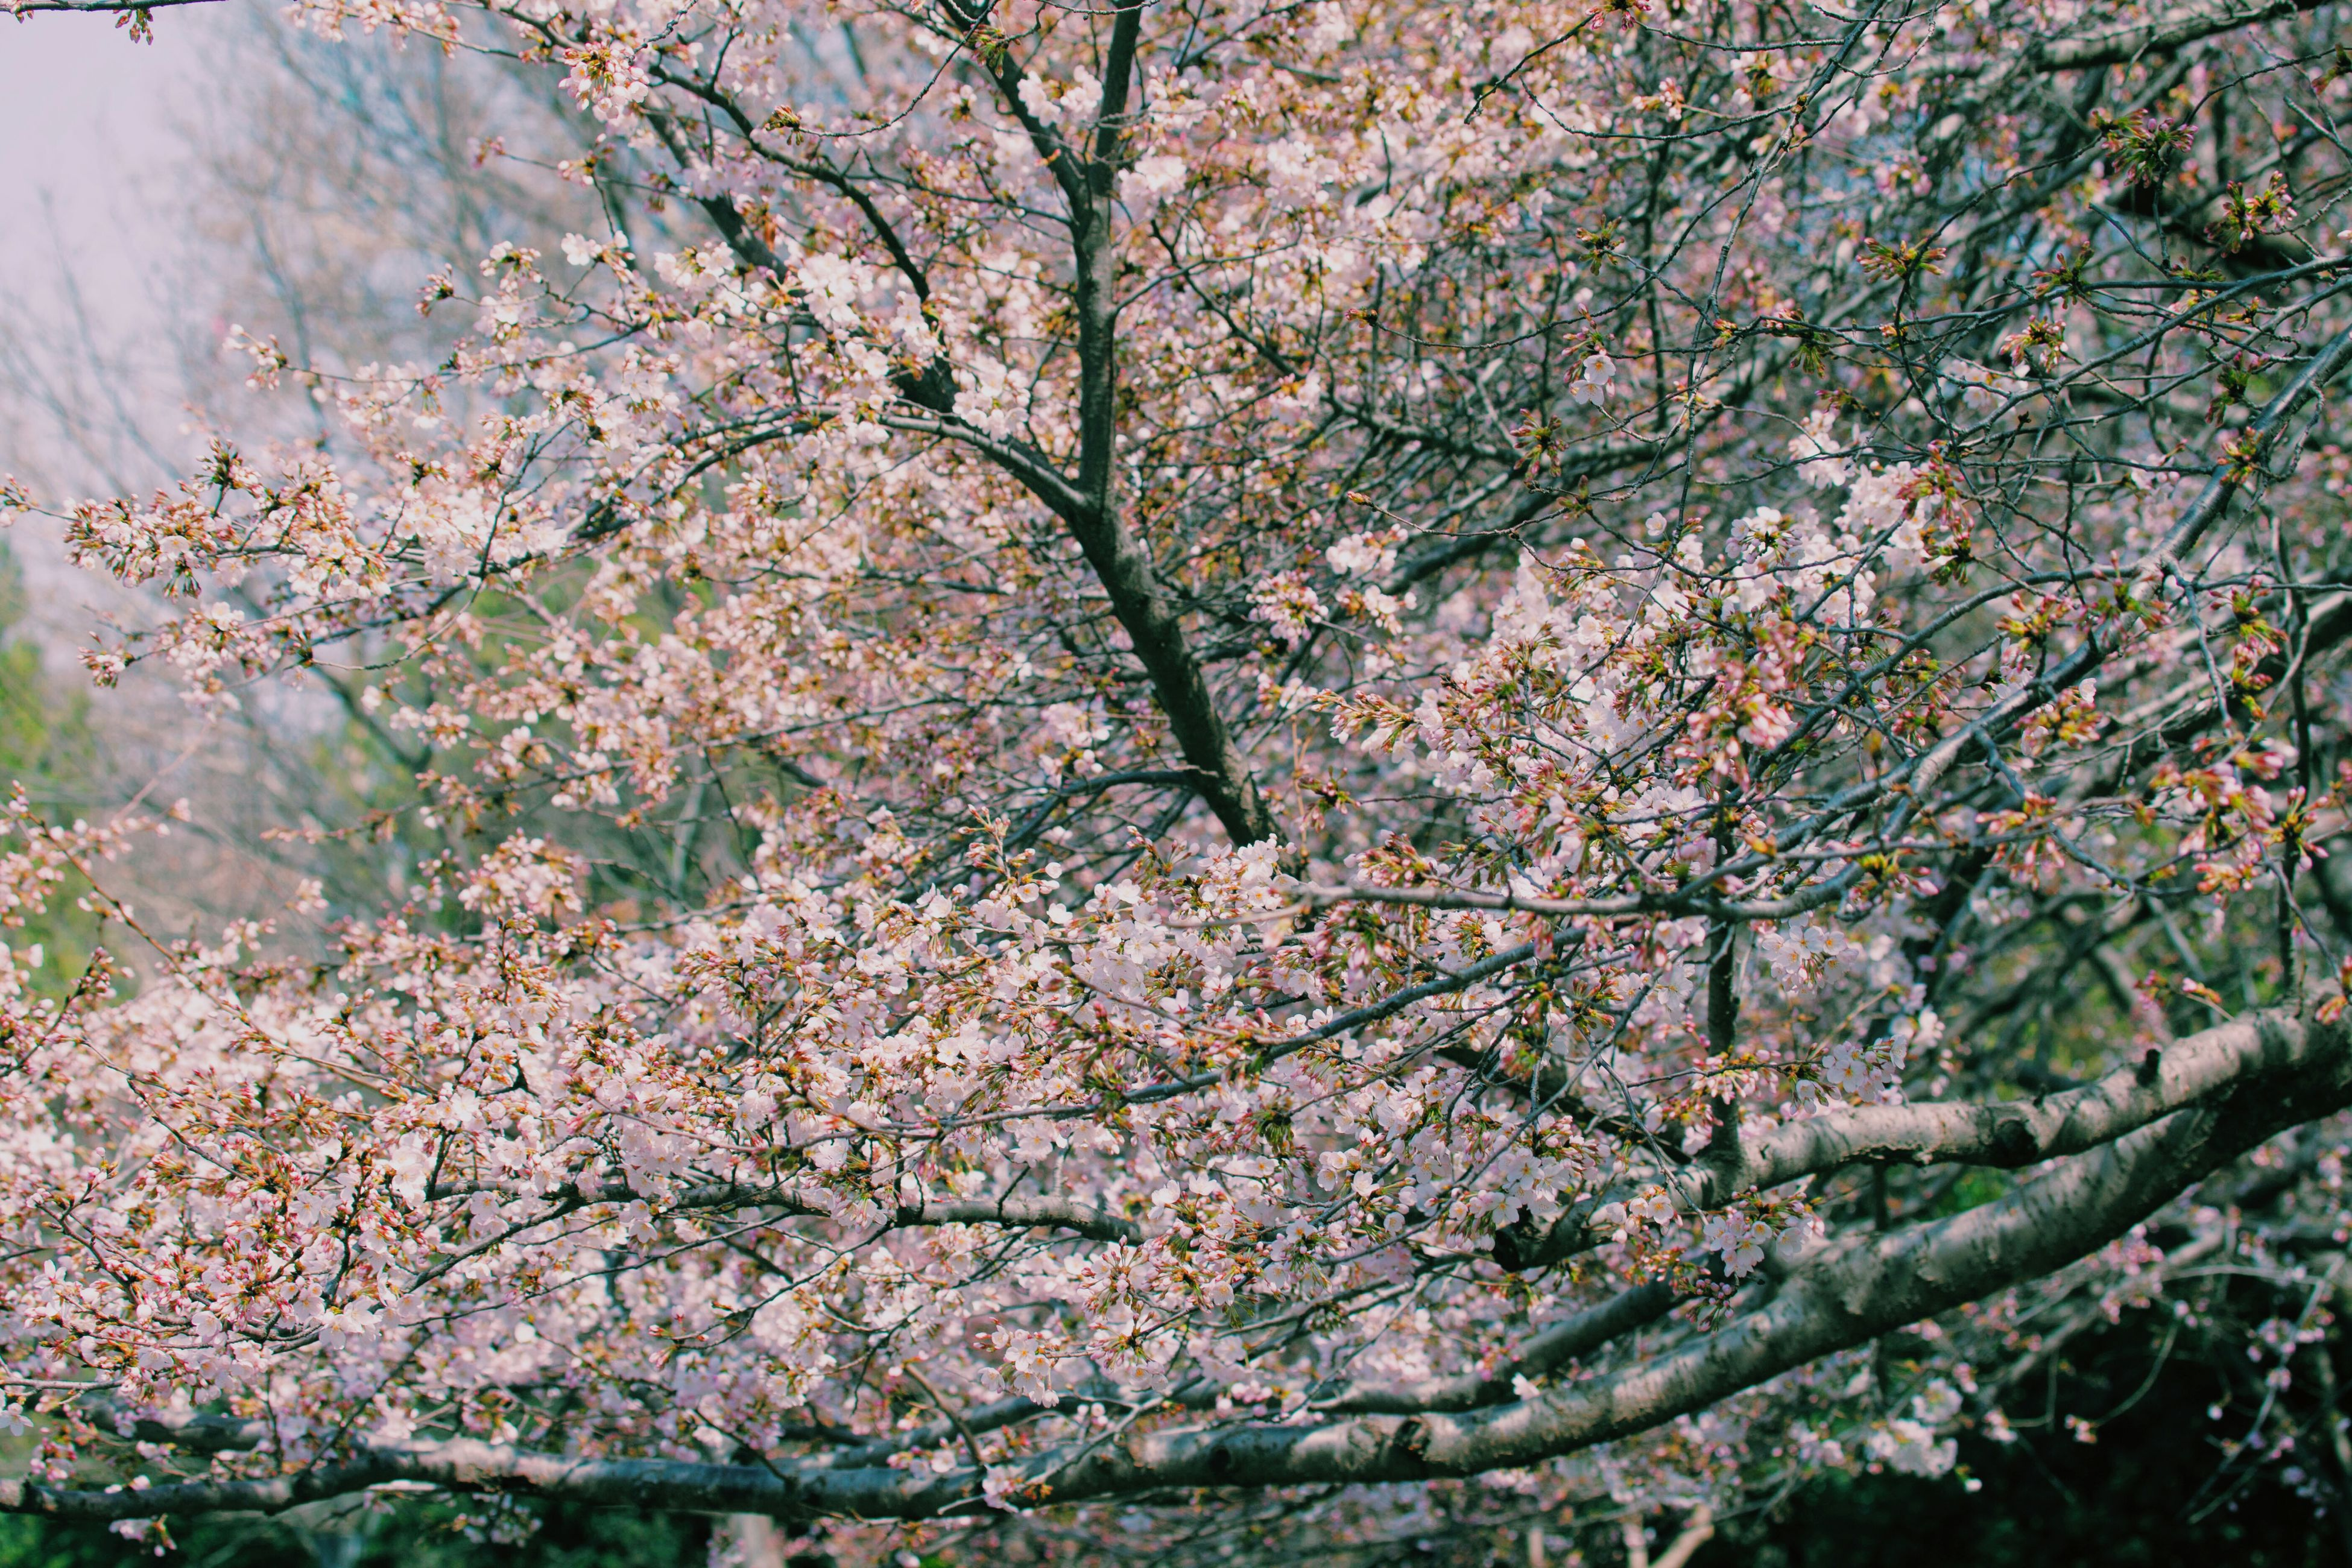 tree, branch, flower, growth, freshness, beauty in nature, nature, blossom, cherry blossom, cherry tree, fragility, springtime, low angle view, in bloom, tranquility, pink color, twig, fruit tree, day, outdoors